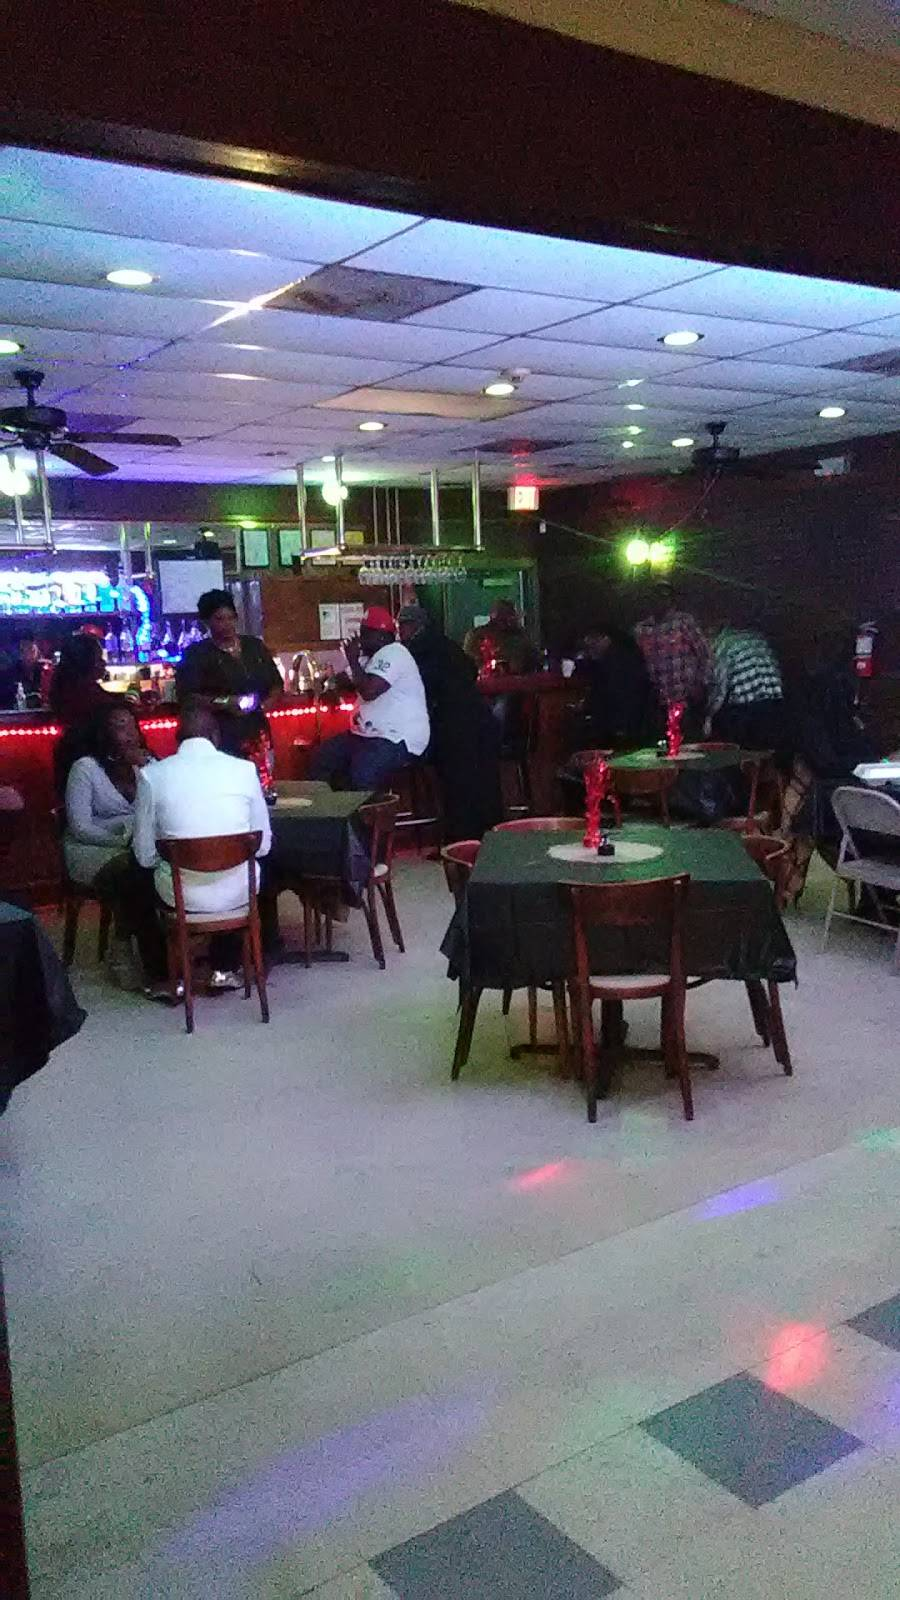 Jet a Way | restaurant | 55 Williamsburg County Hwy, Kingstree, SC 29556, USA | 8433552929 OR +1 843-355-2929